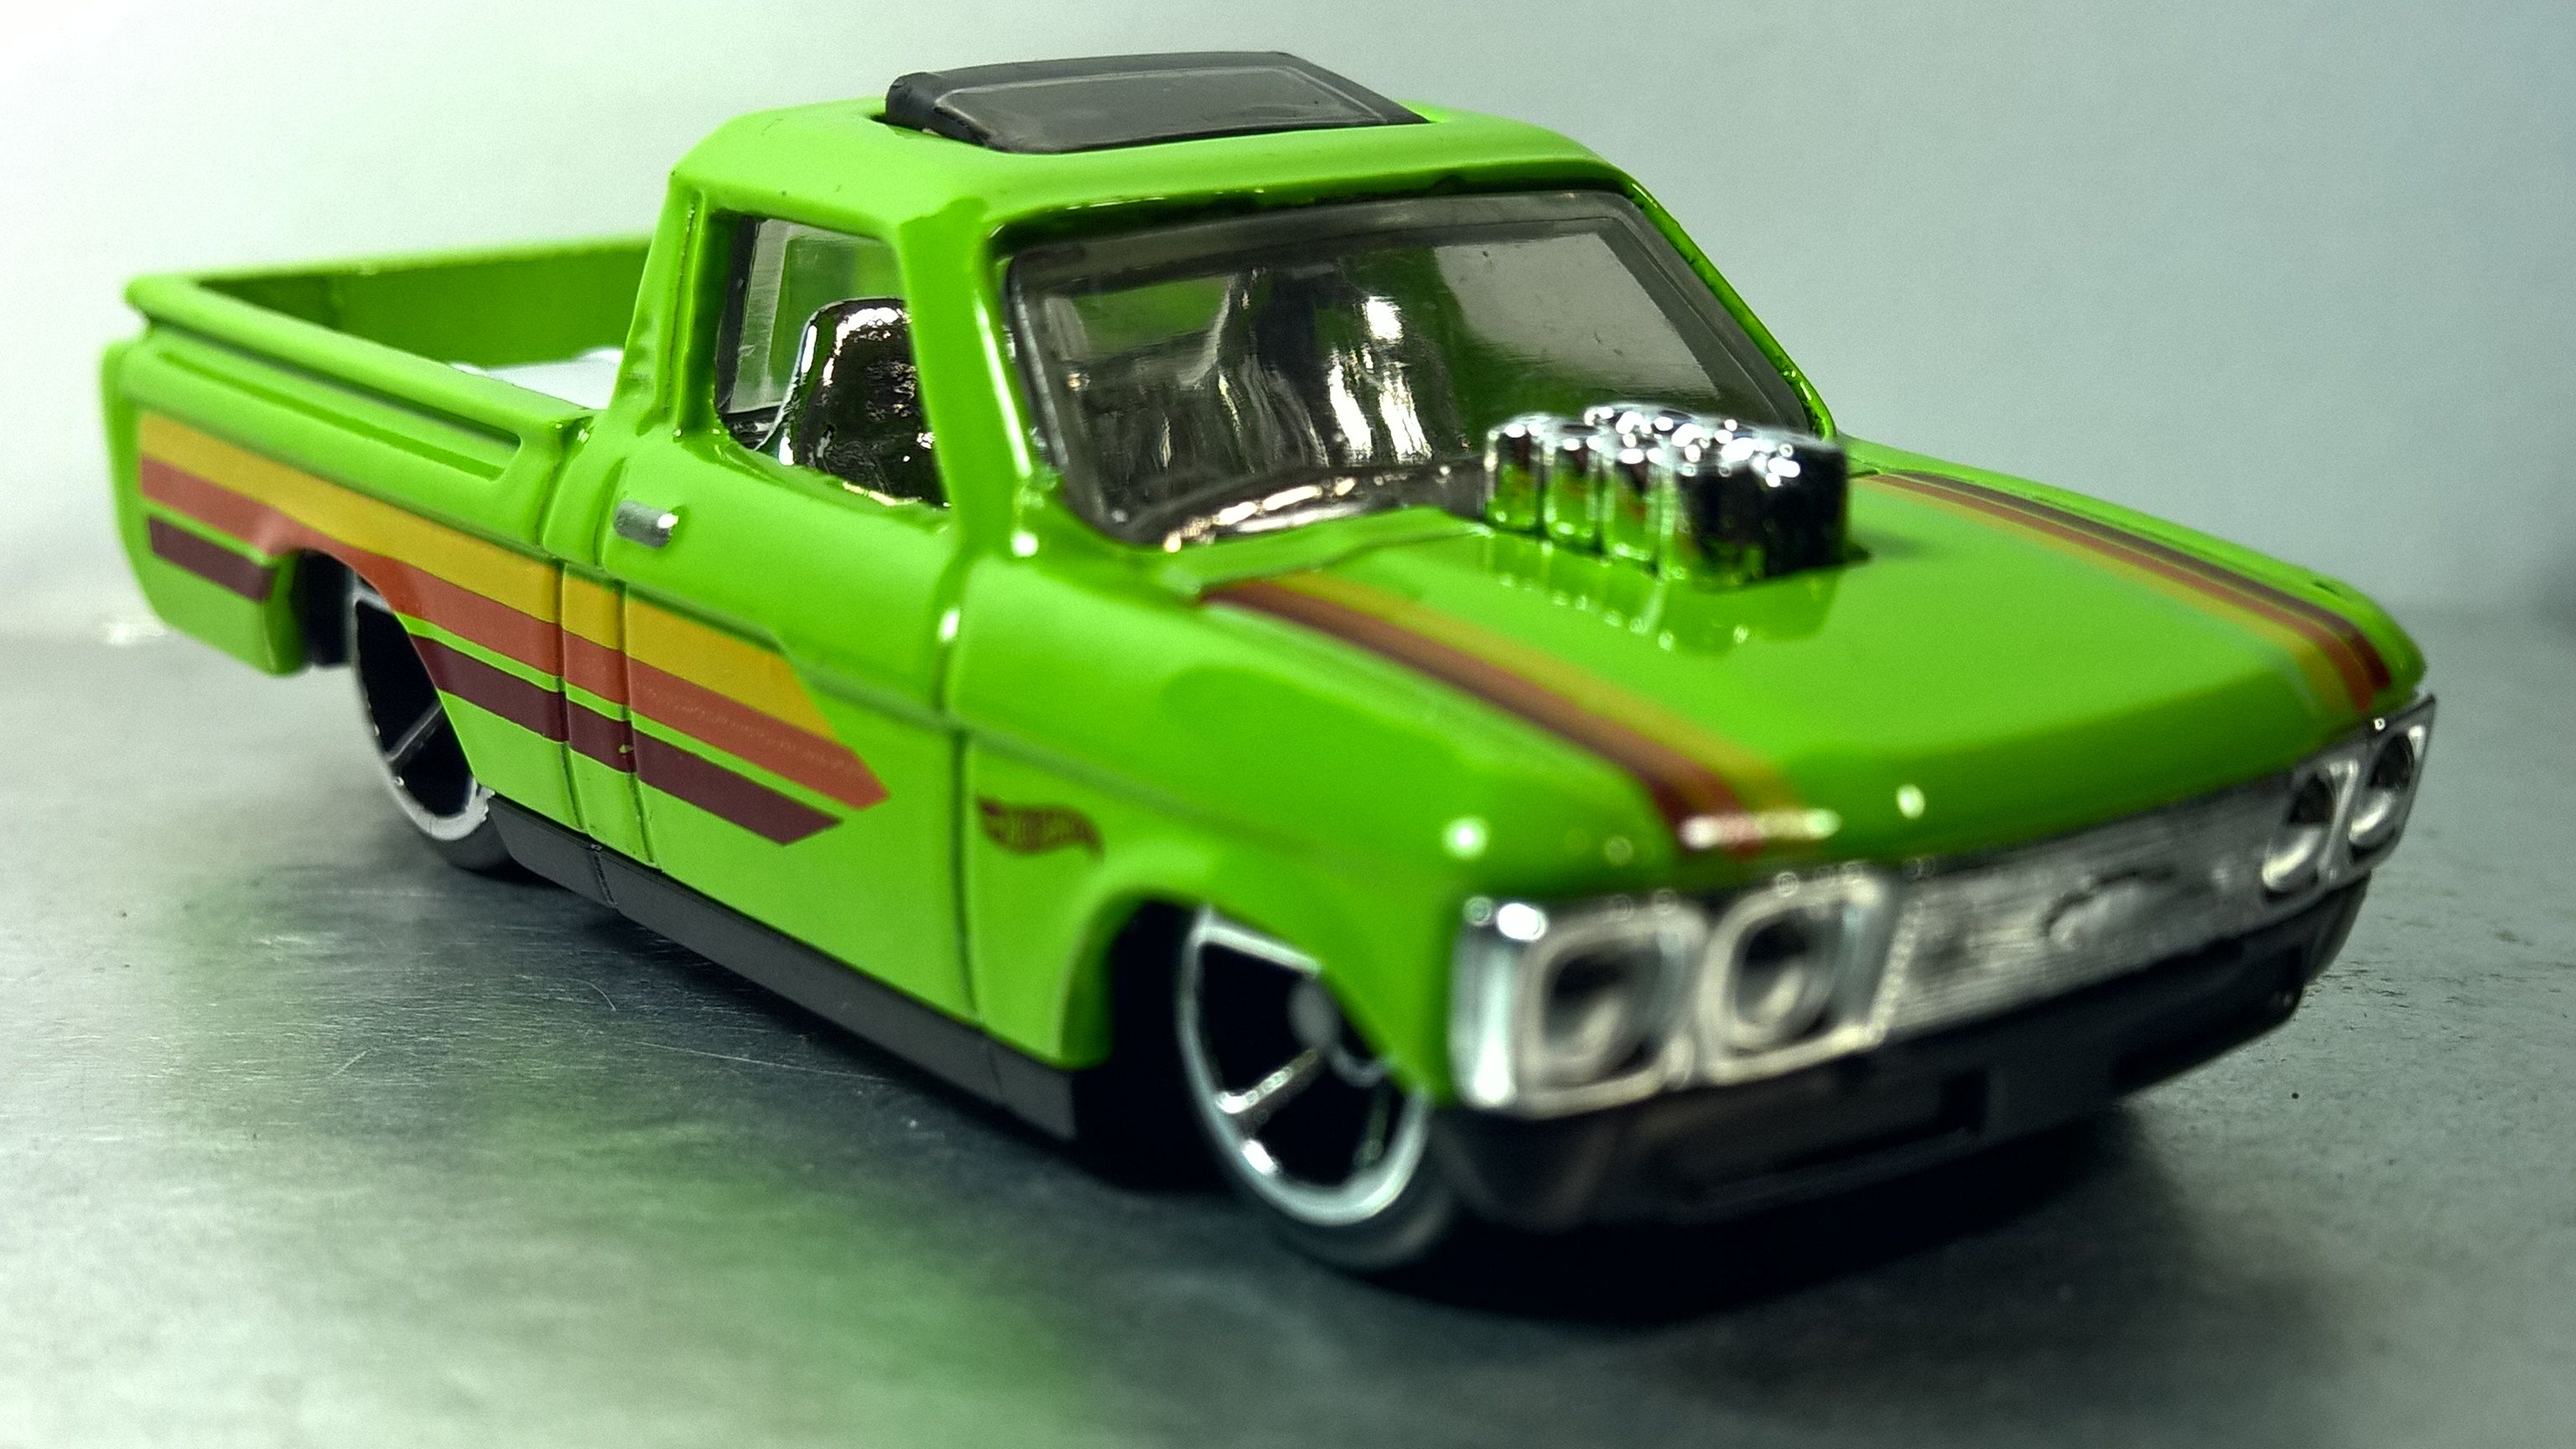 Hot Wheels Custom 72 Chevy Luv 2019 Chevy Luv Hot Wheels Chevy